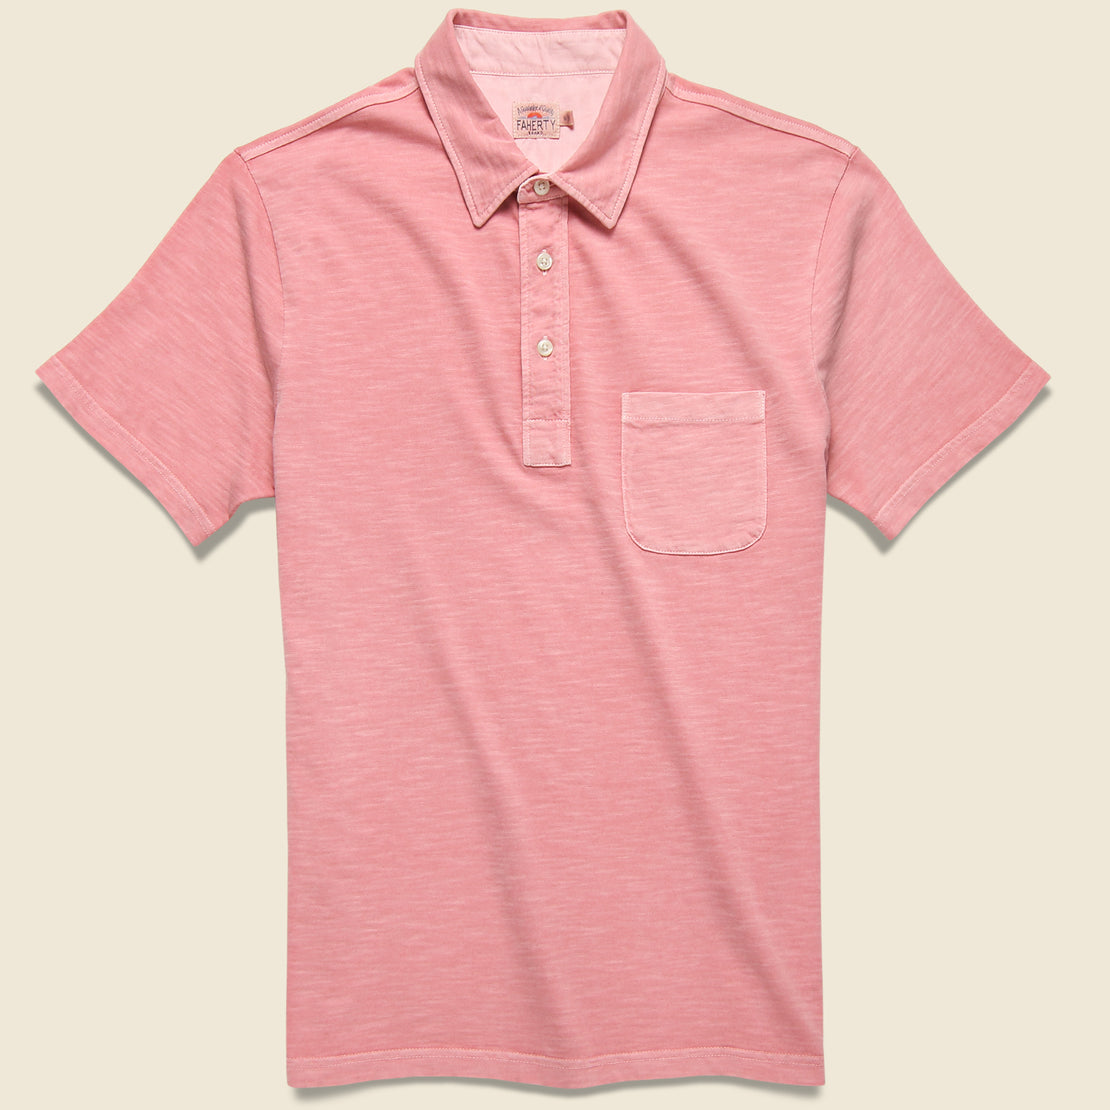 Faherty Garment Dyed Polo Shirt - Rose